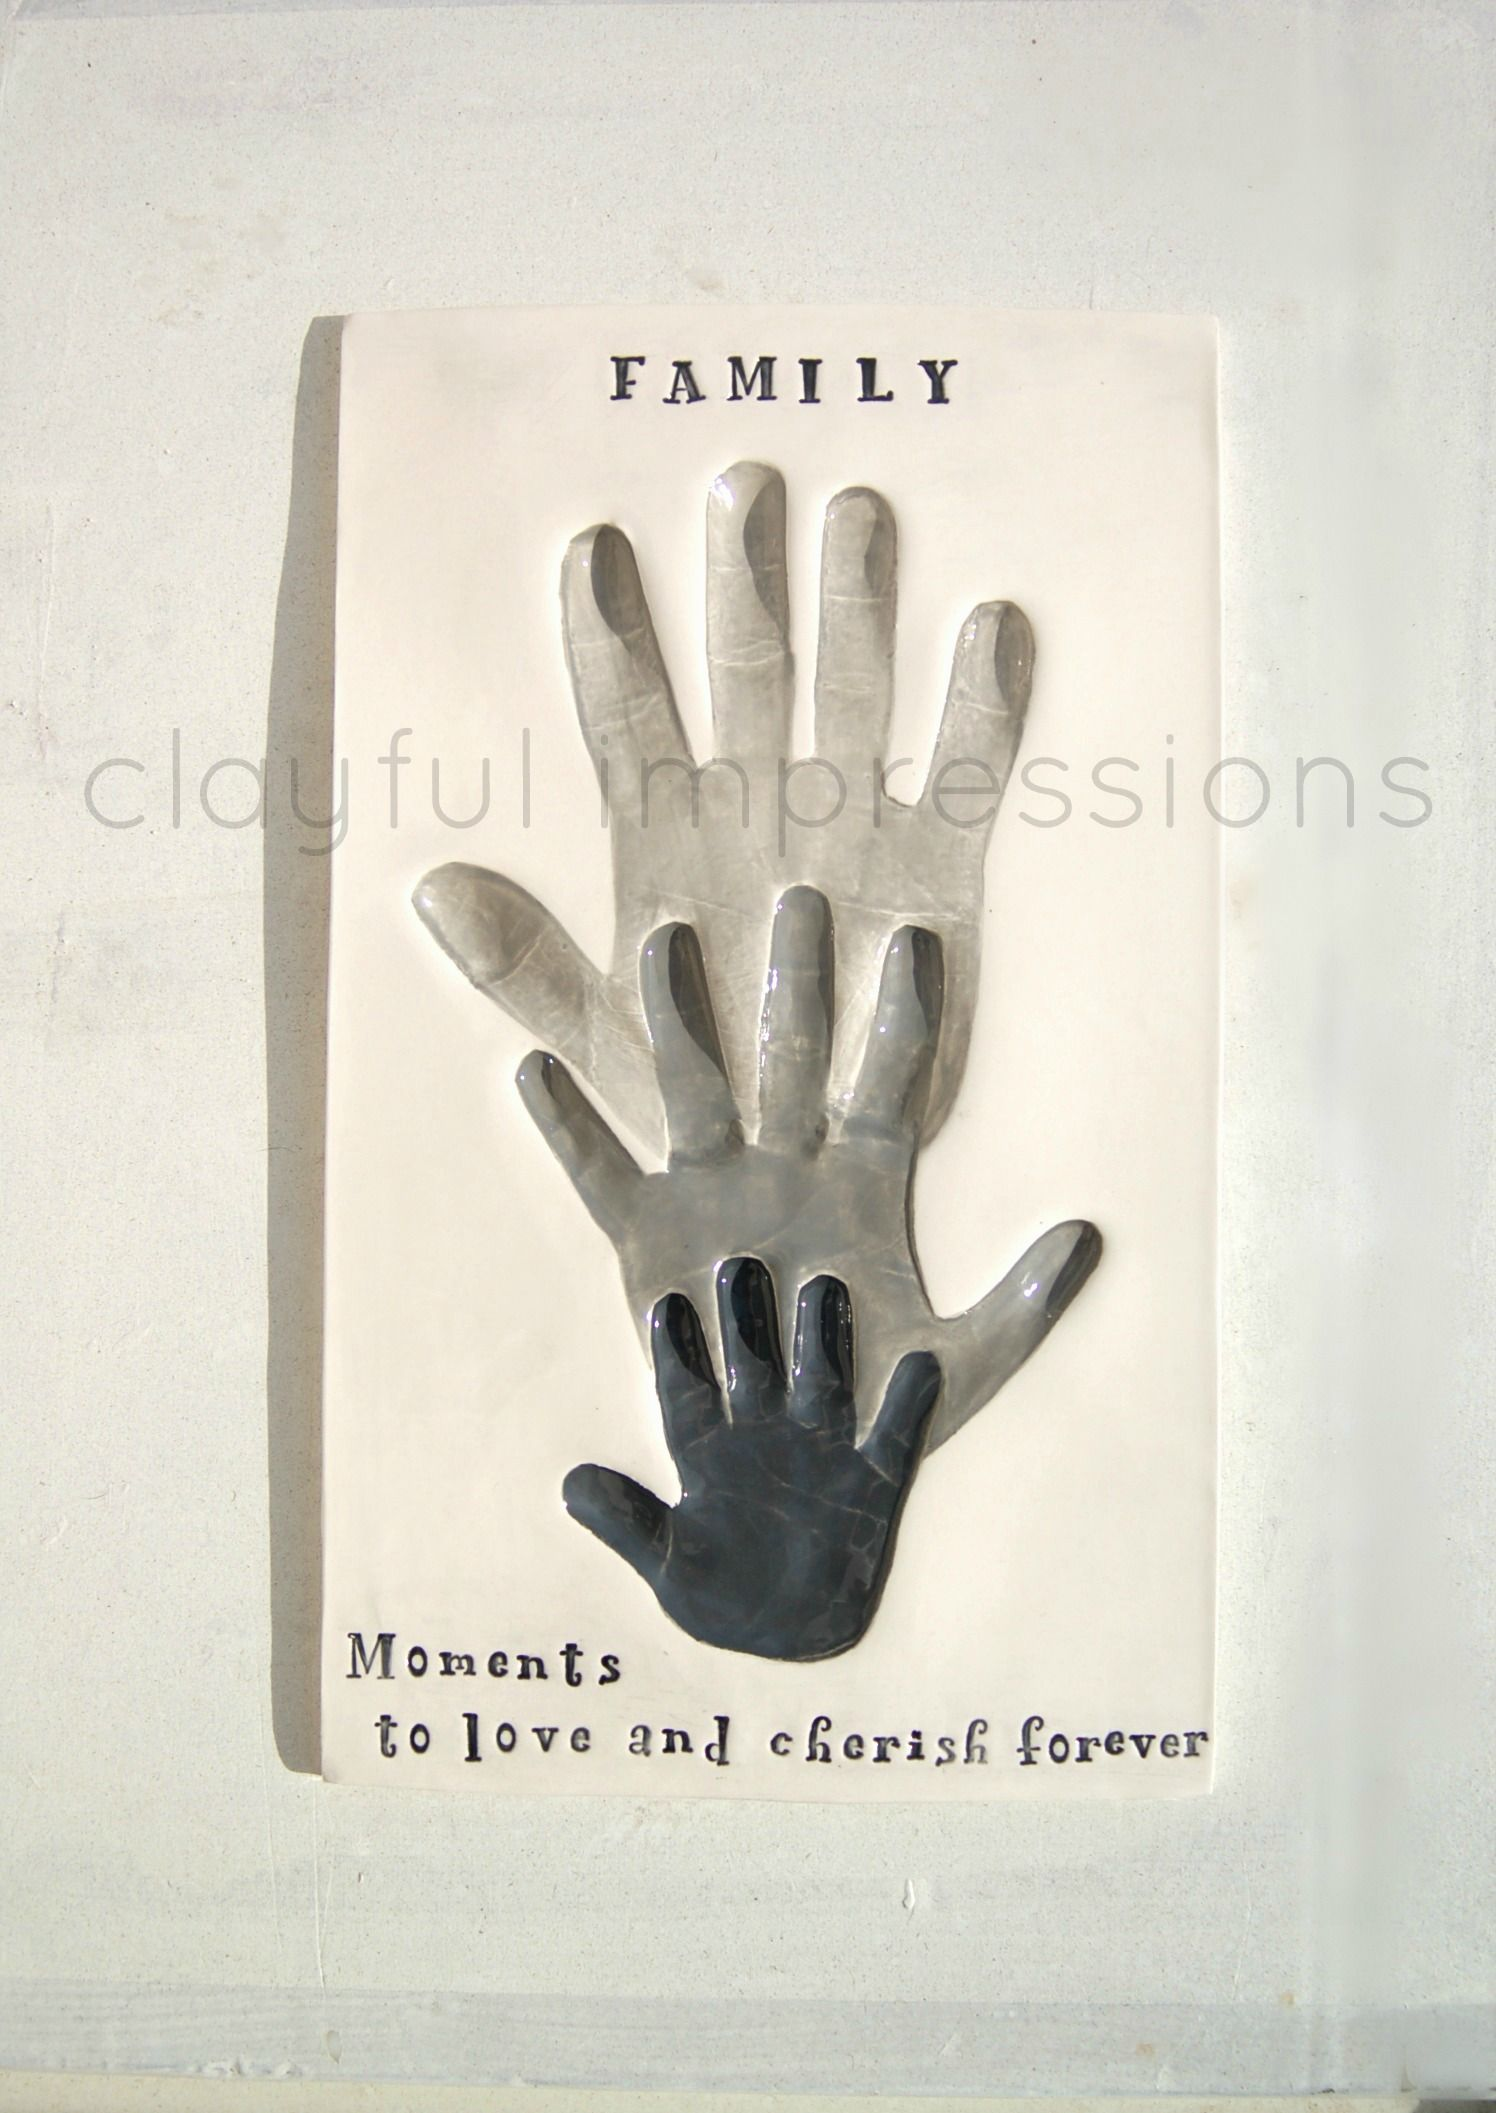 Celebrating Family And The Memoires That Come With It Clayfulimpressions Www Etsy Com Shop Dprintsclayful Diy Baby Gifts Diy Baby Stuff Family Crafts